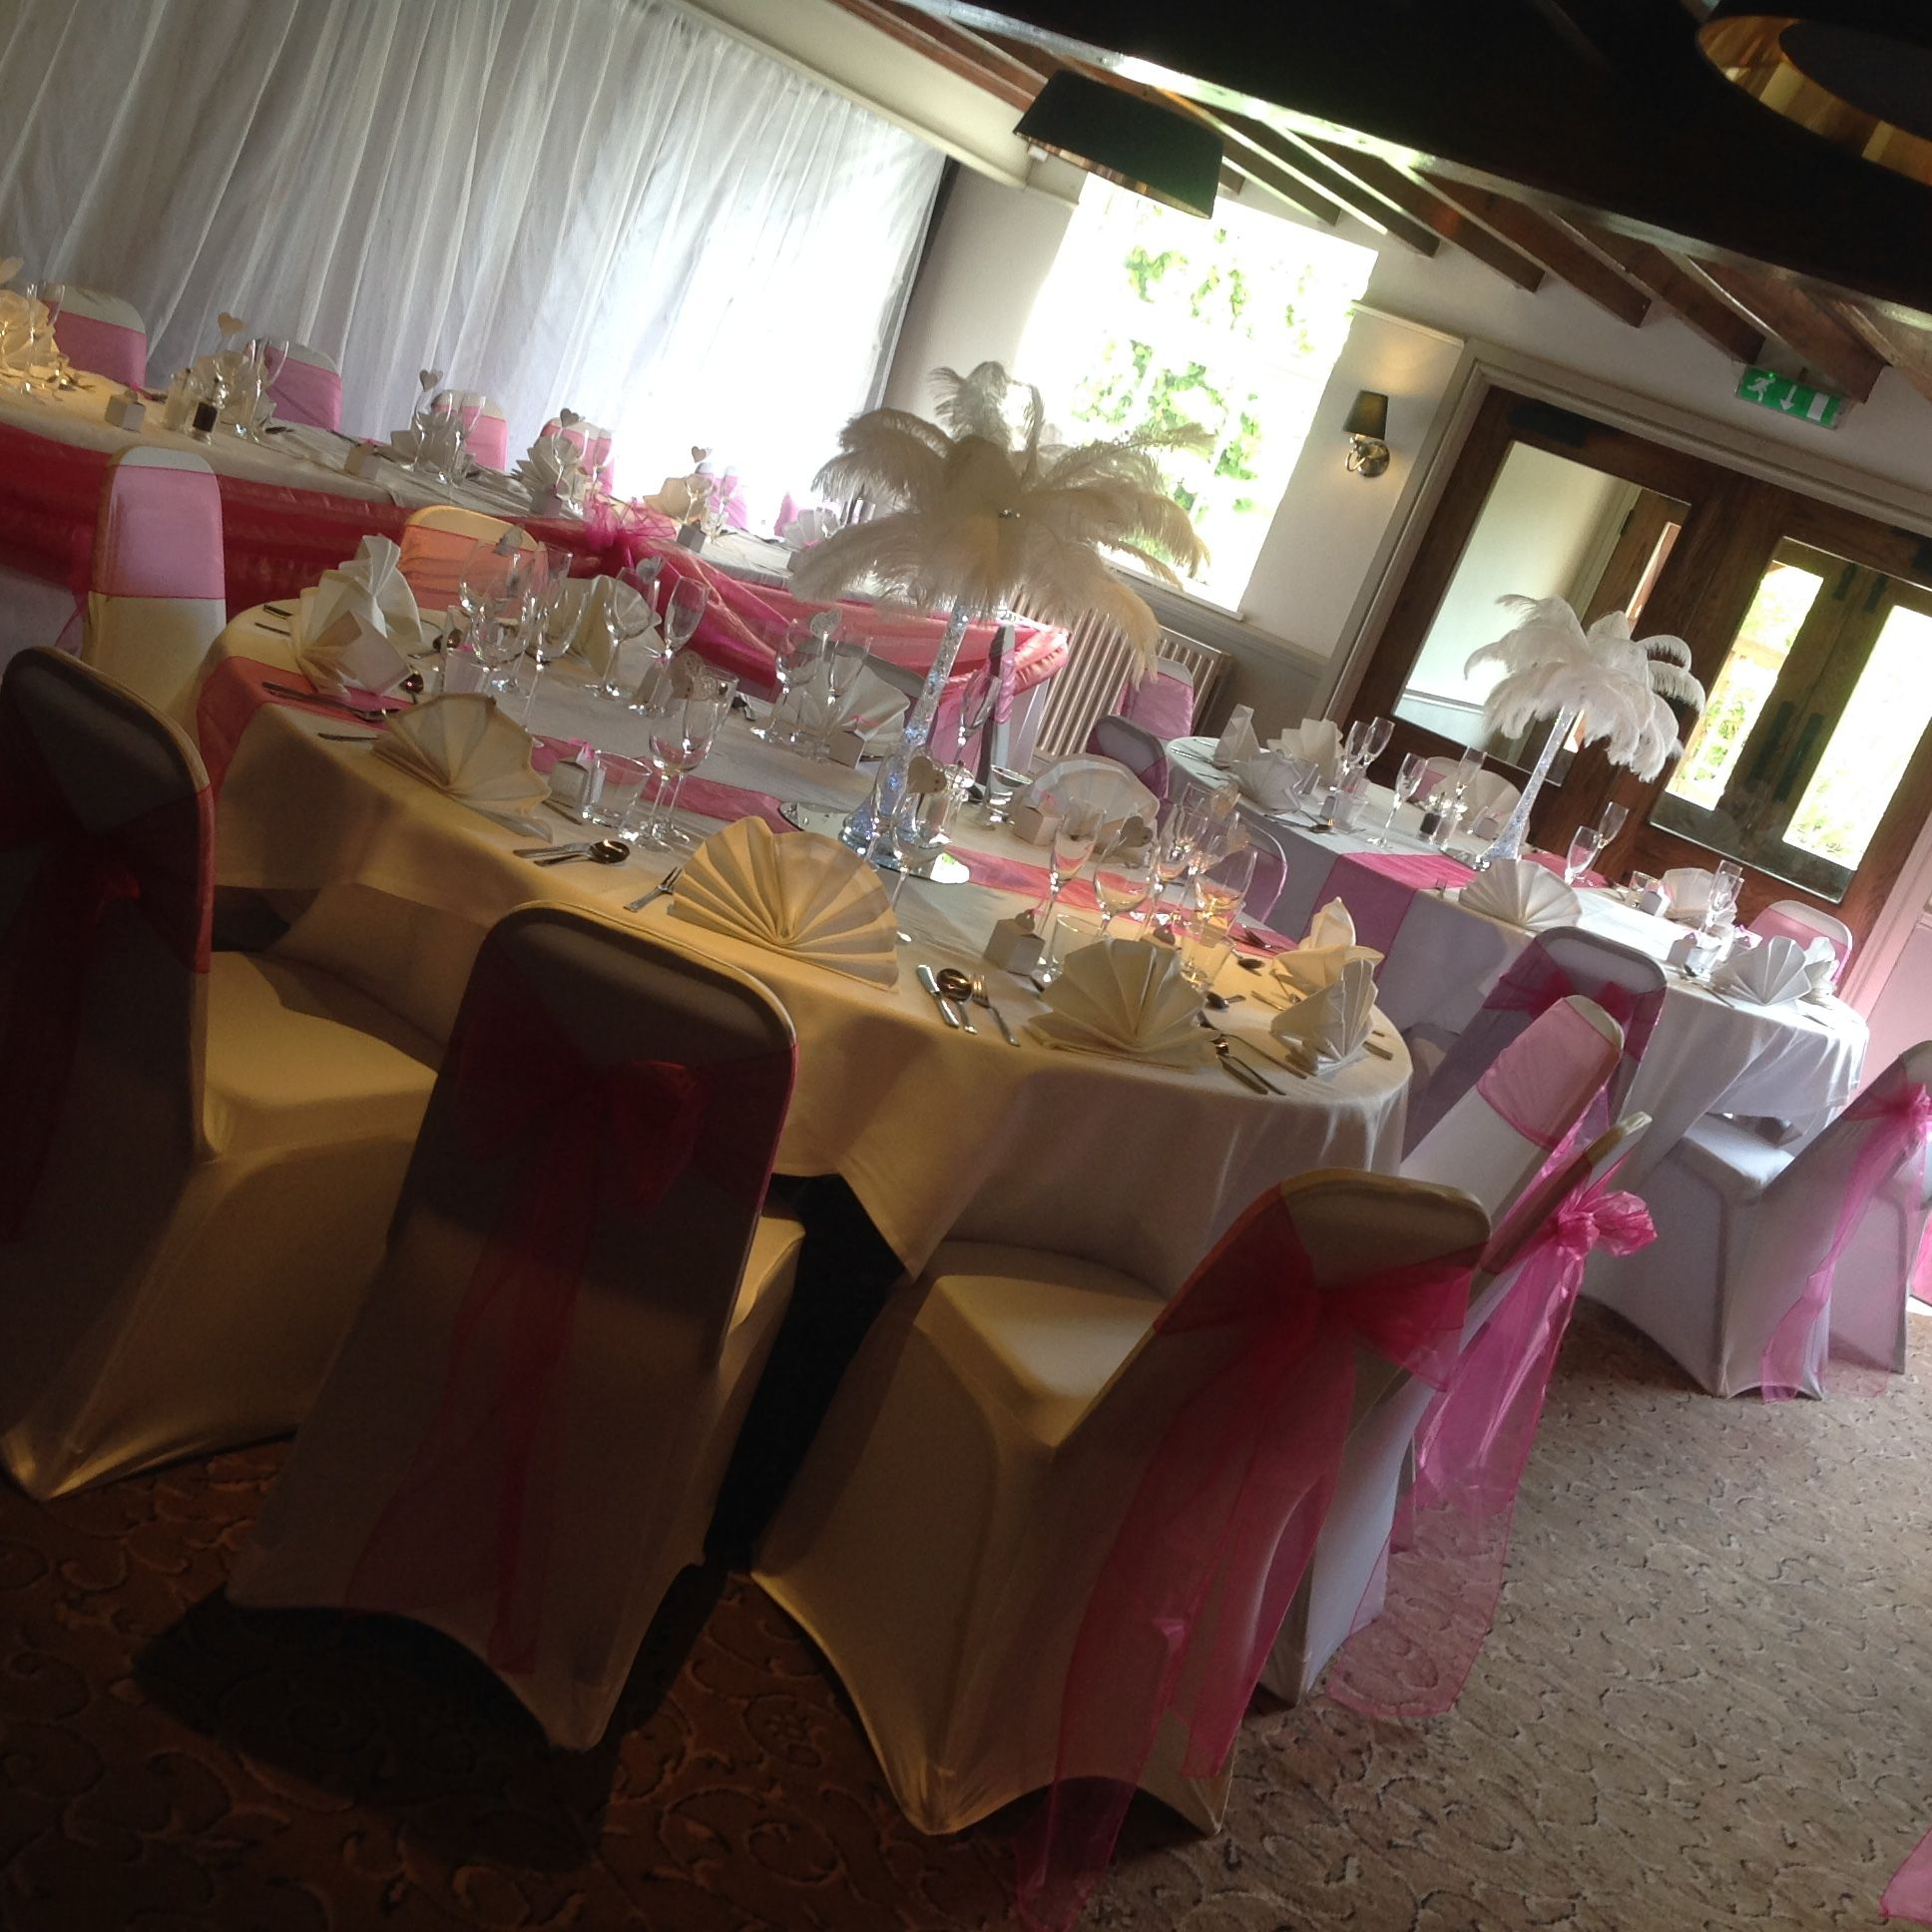 Chair Cover Hire Tamworth Chairish Feather Eiffel Tower Arrangements With Lights And Large Mirror Plate Hot Pink Fuchsia Sash Backdrop All Available To From Make It Special Events Atherstone Warwickshire